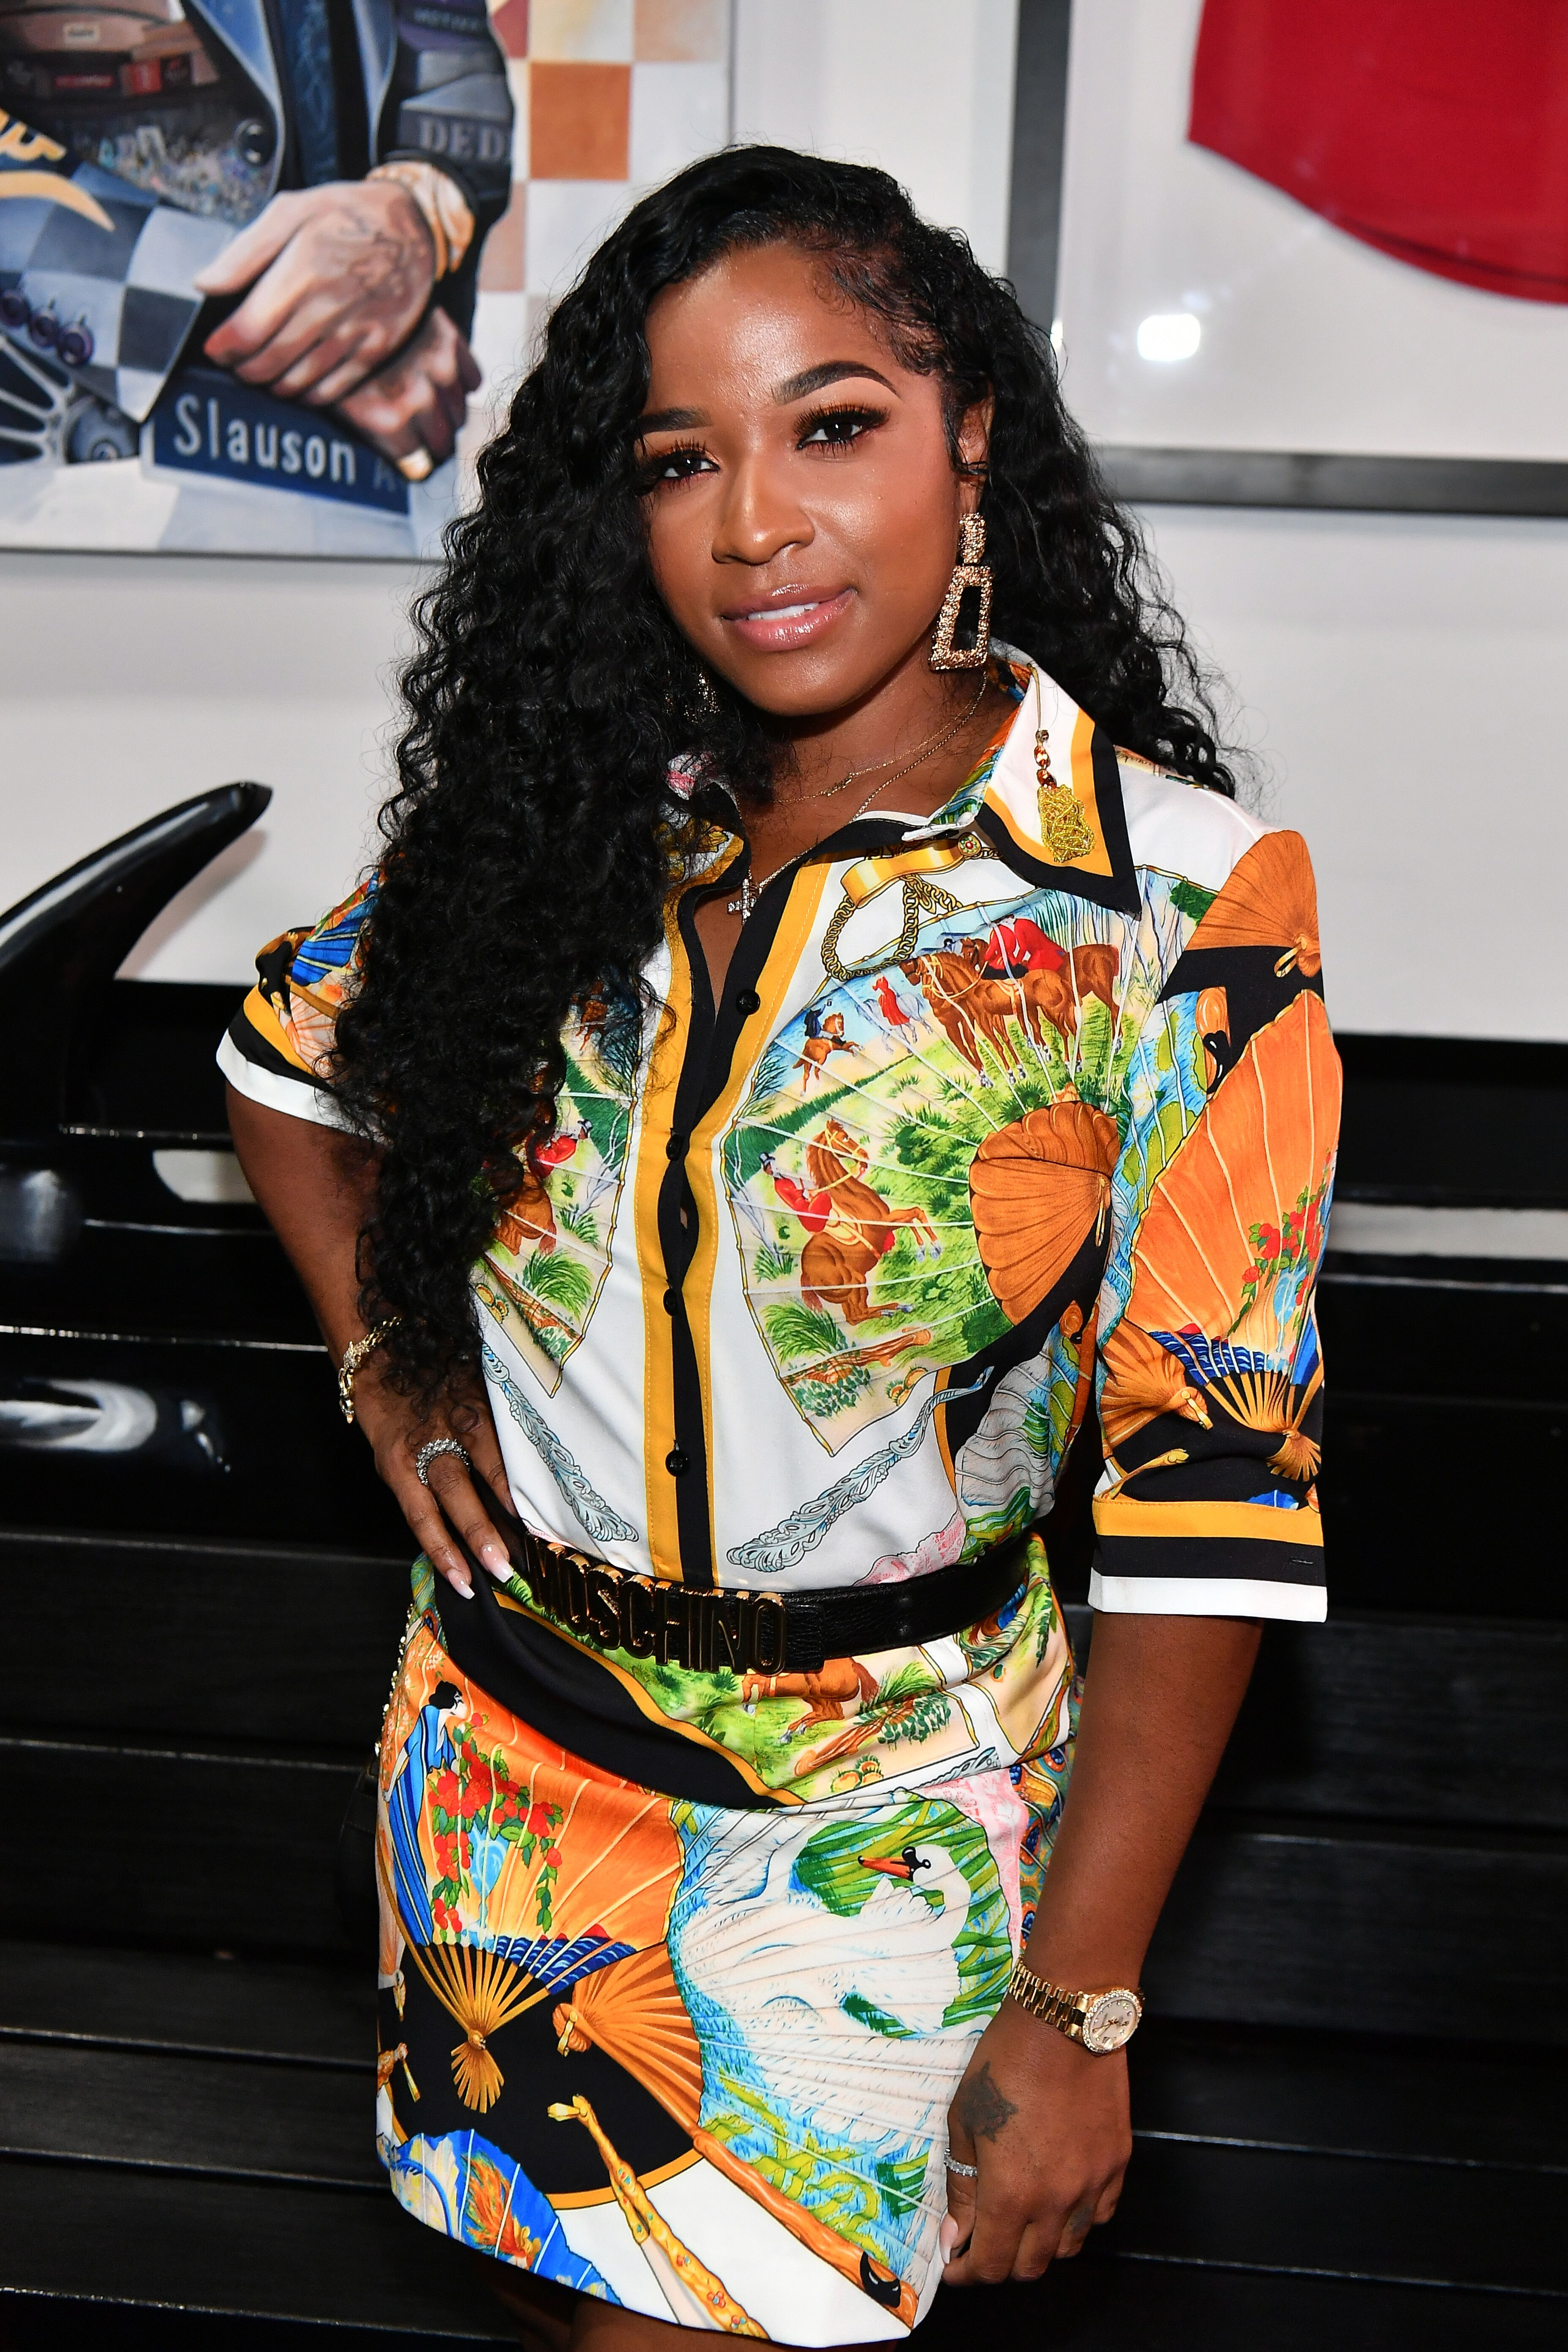 Toya Wright attends the Nipsey Hussle Exhibit Unveiling at The Trap Music Museum on August 13, 2019 in Atlanta, Georgia.   Source: Getty Images